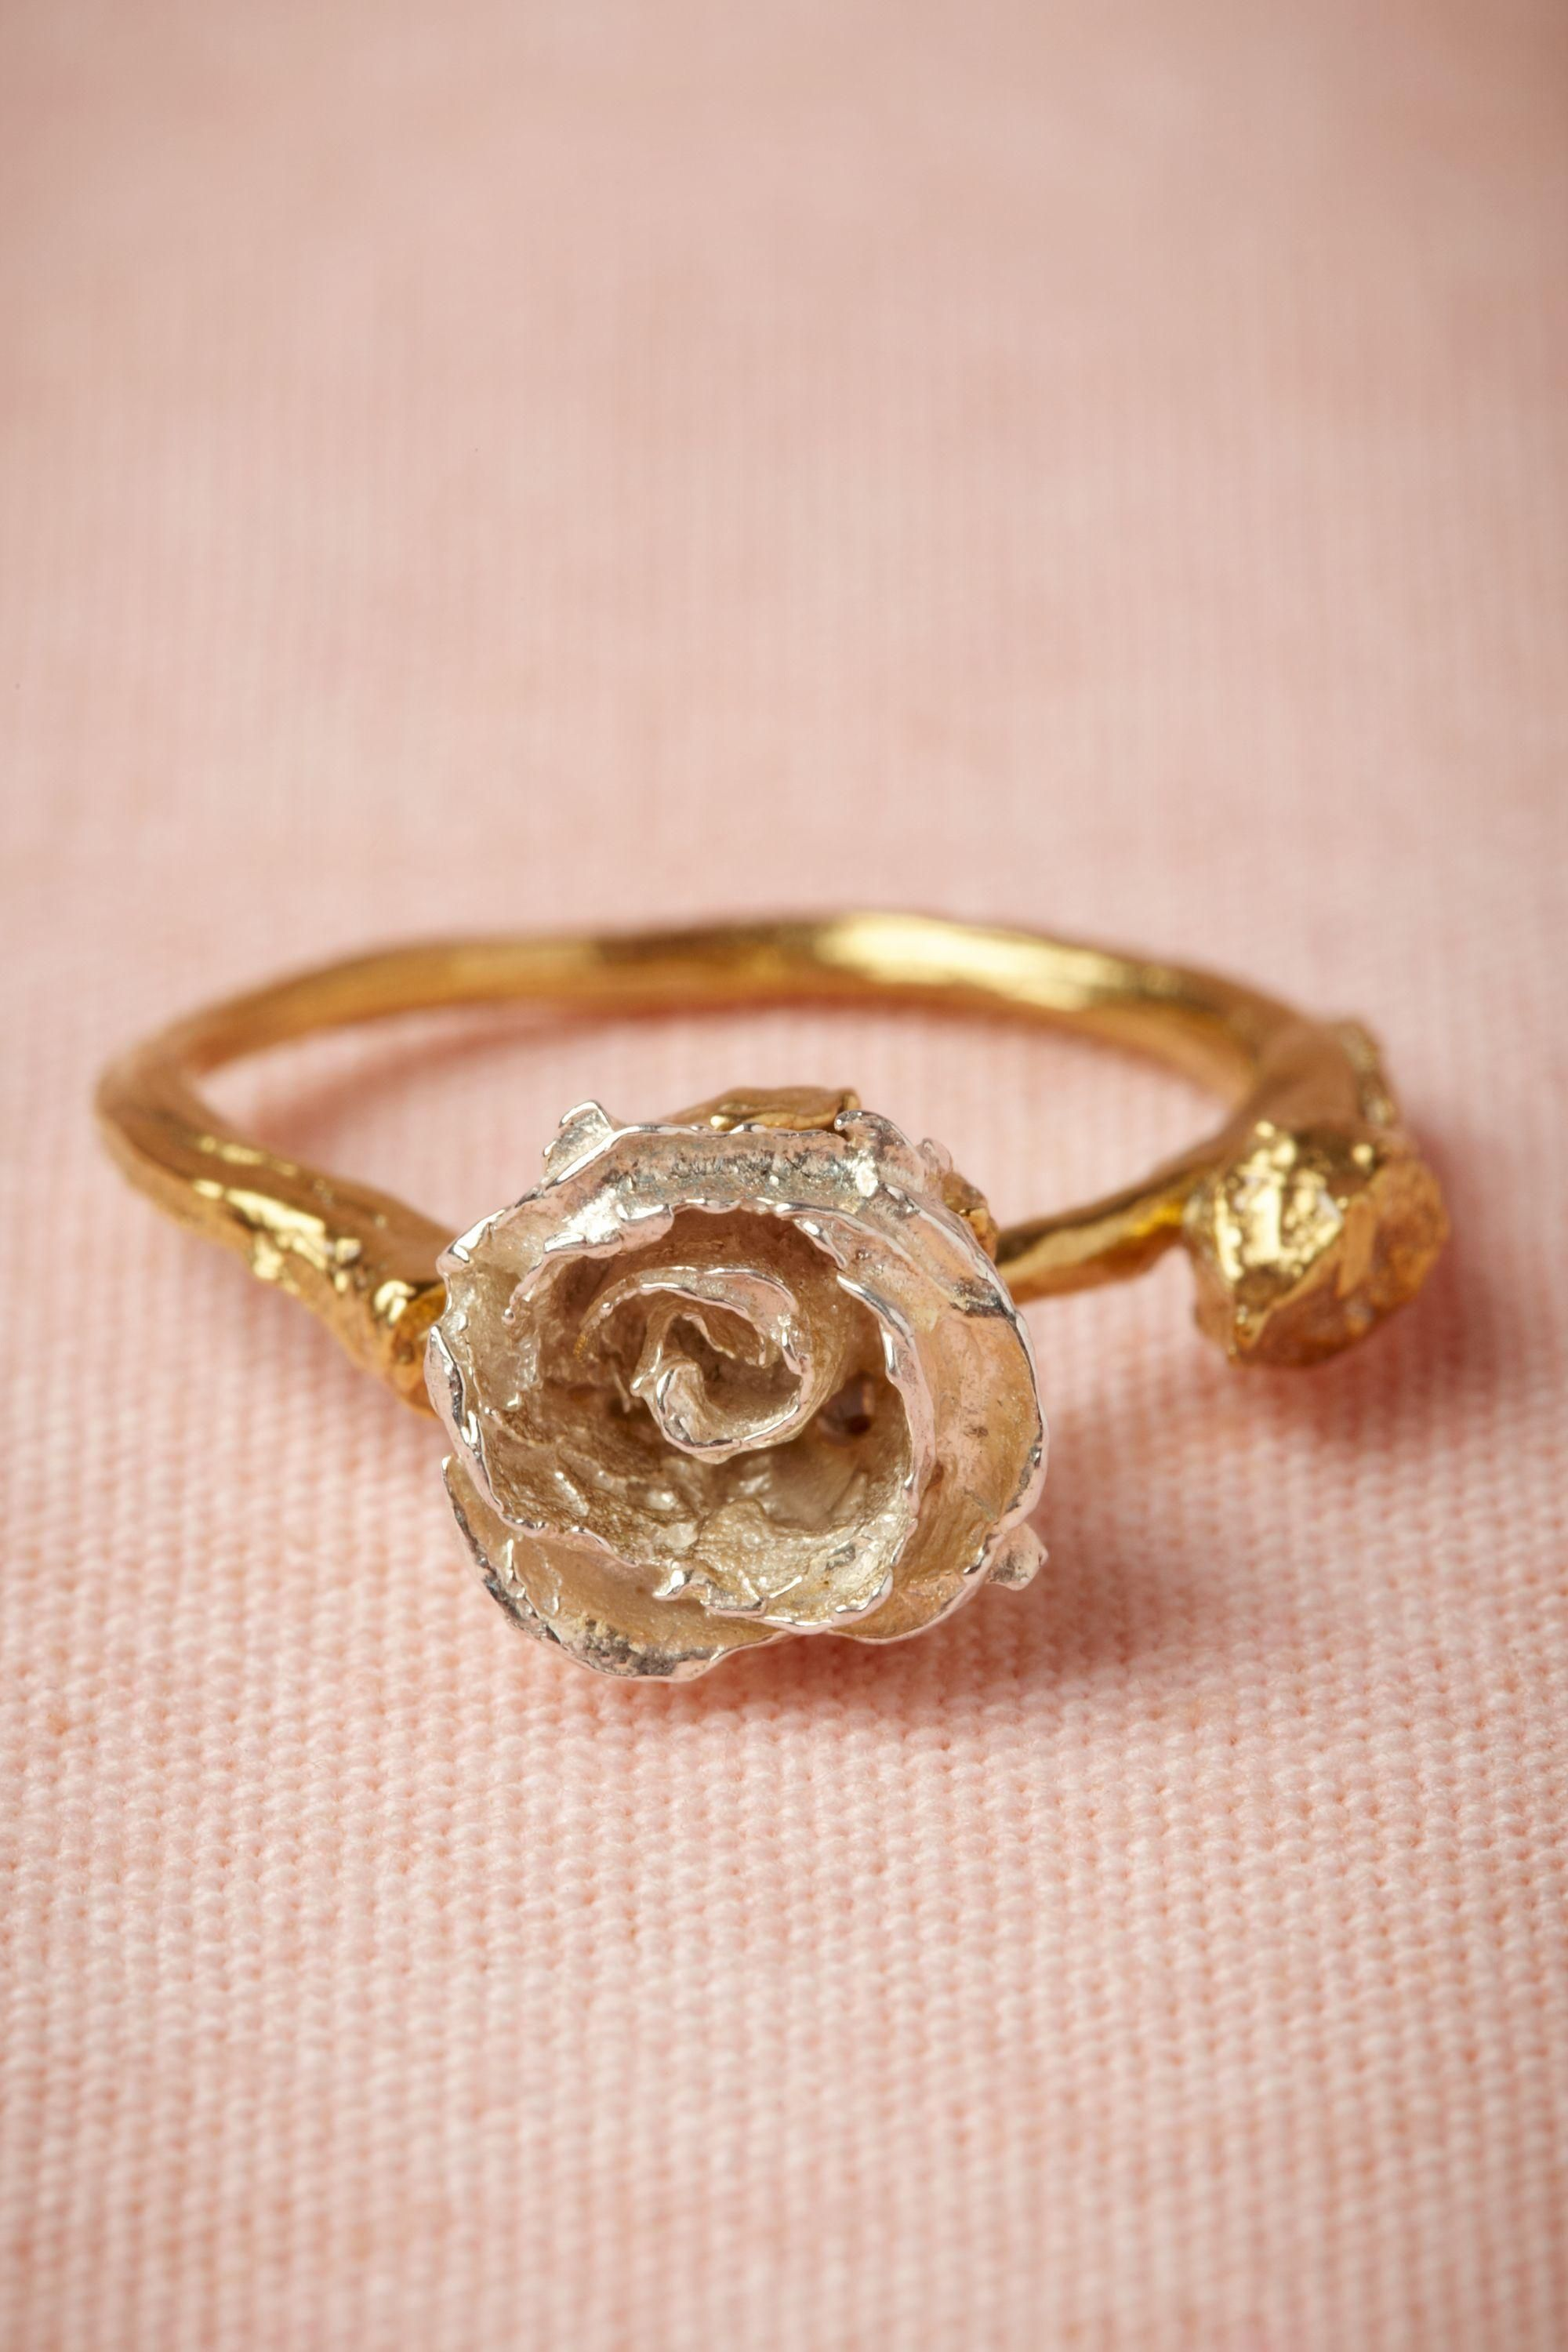 disney beauty and the beast rose ring in gold | * Kiss & Make Up ...